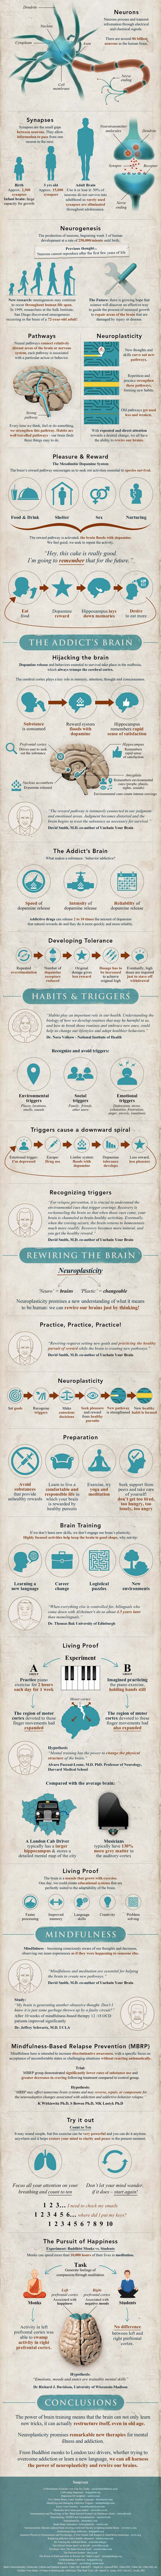 best 25 structure of brain ideas on pinterest brain anatomy and